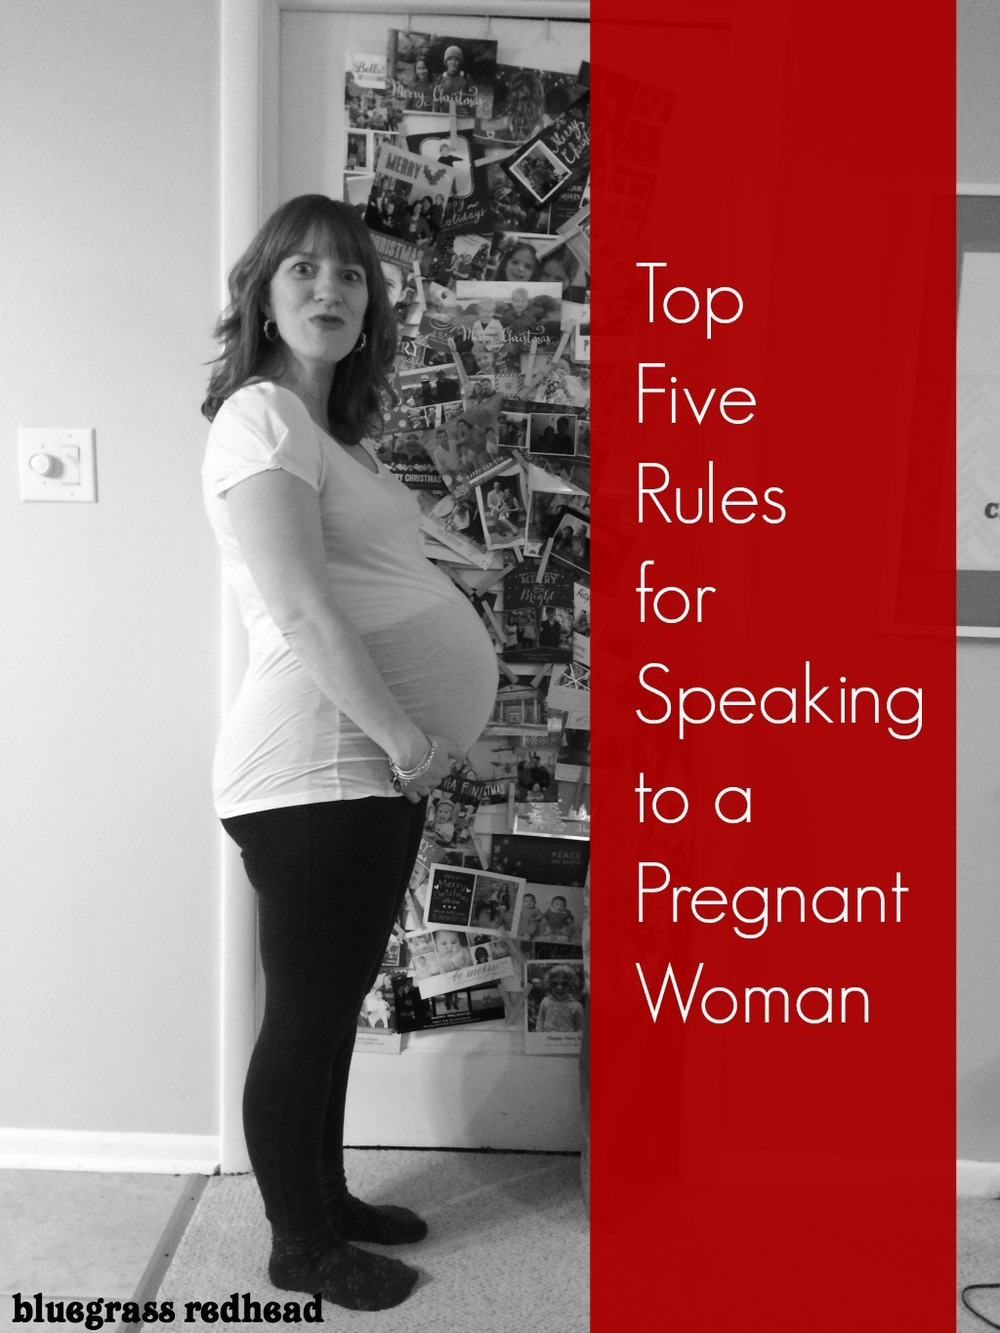 how to speak to a pregnant woman.jpg